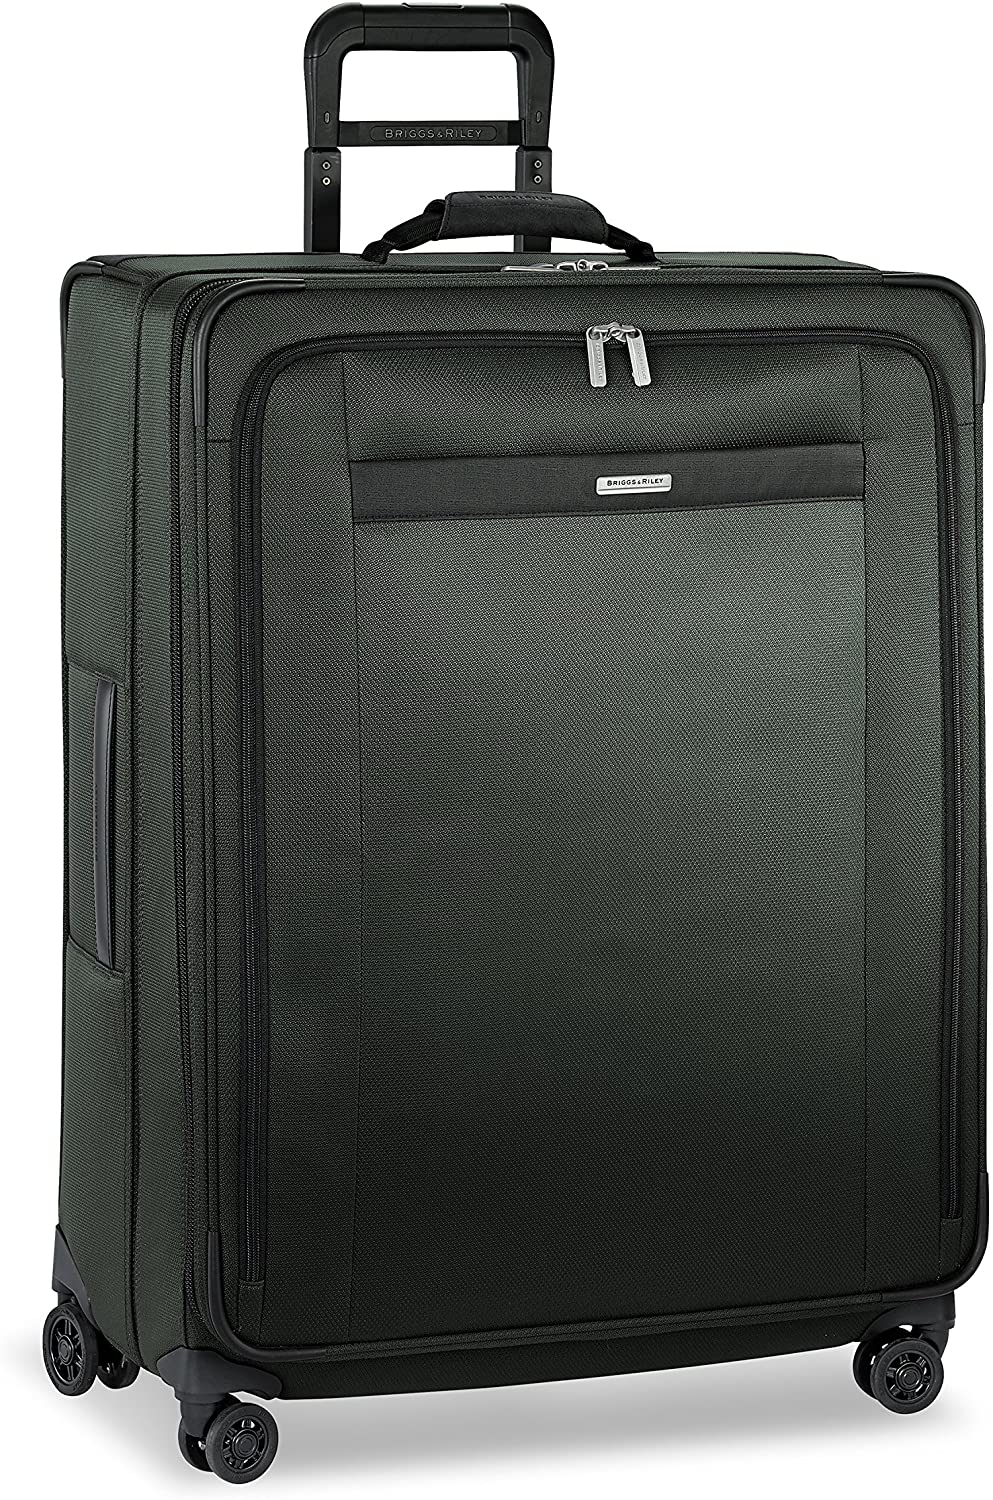 Briggs & Riley Softside Expandable Spinner Rolling Suitcase in rainforest